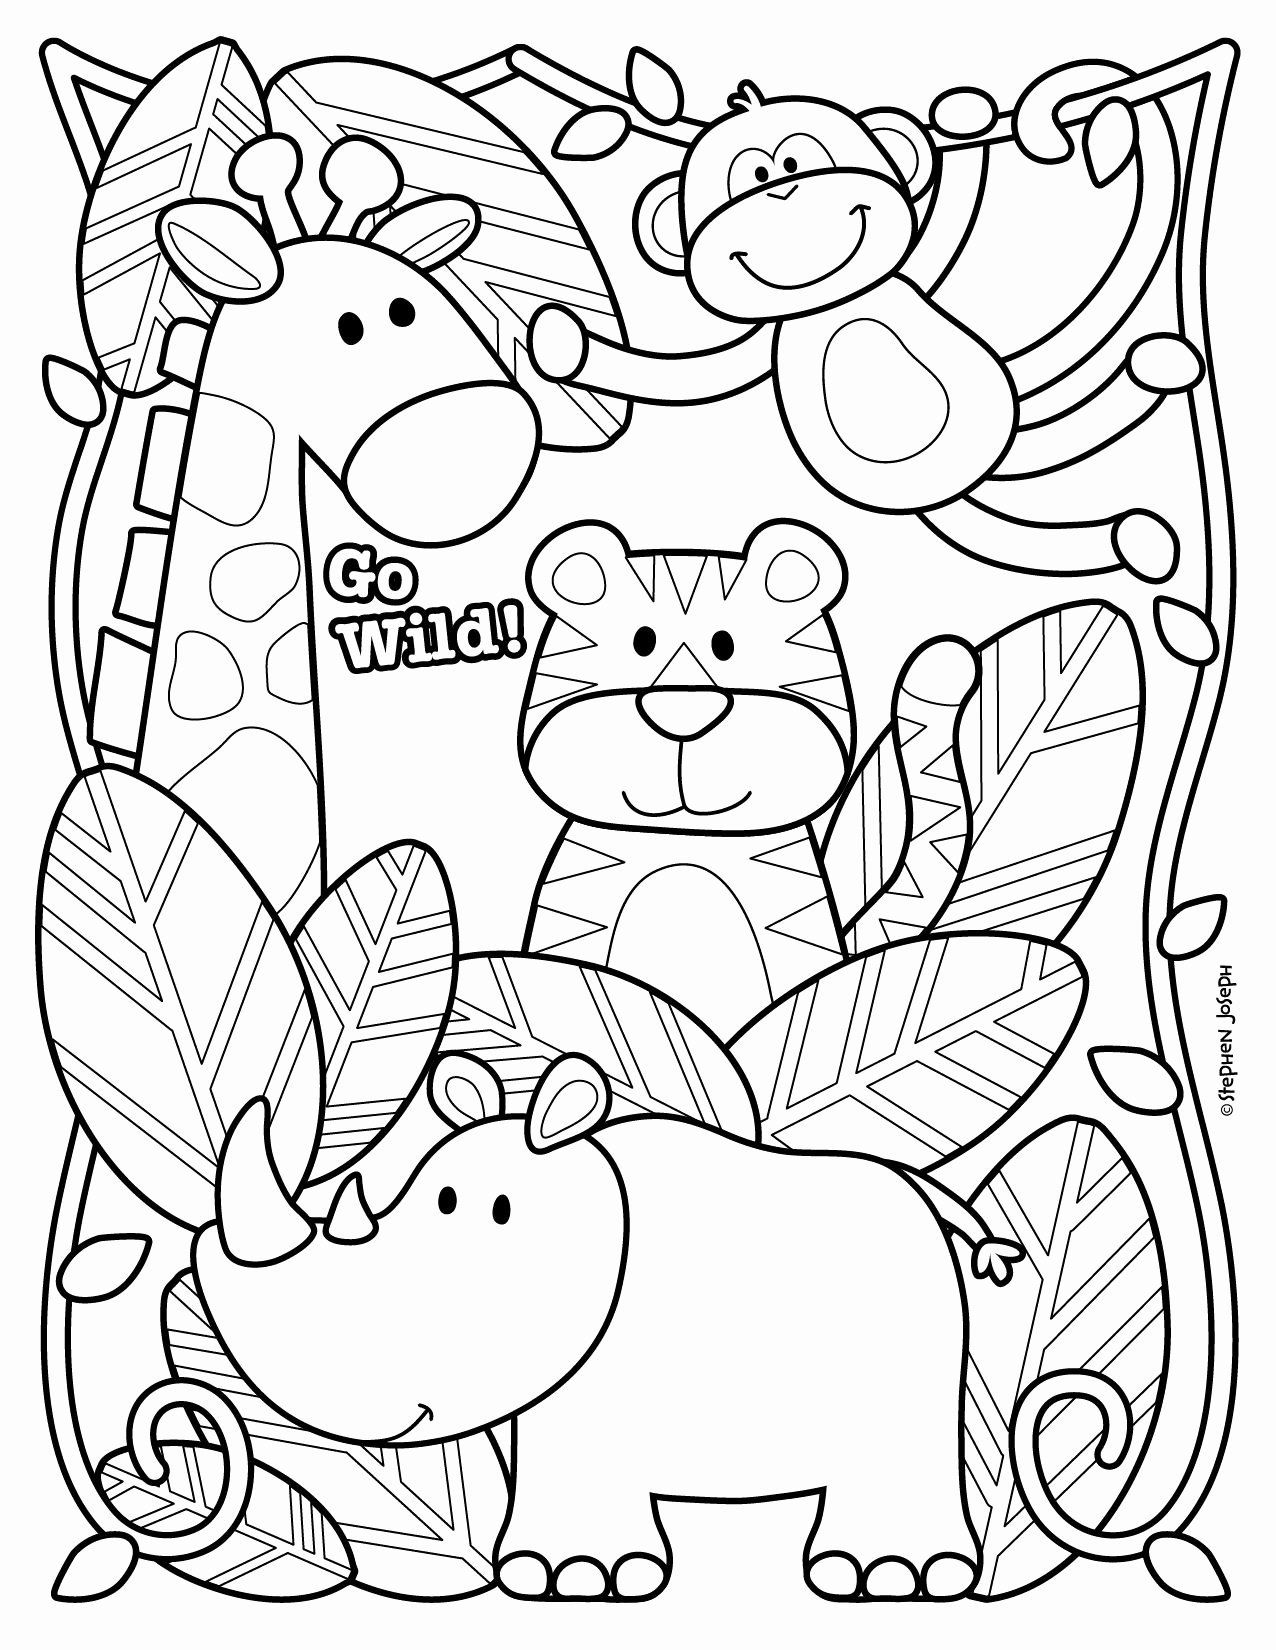 zoo colouring pictures zoo animals coloring pages best coloring pages for kids colouring zoo pictures